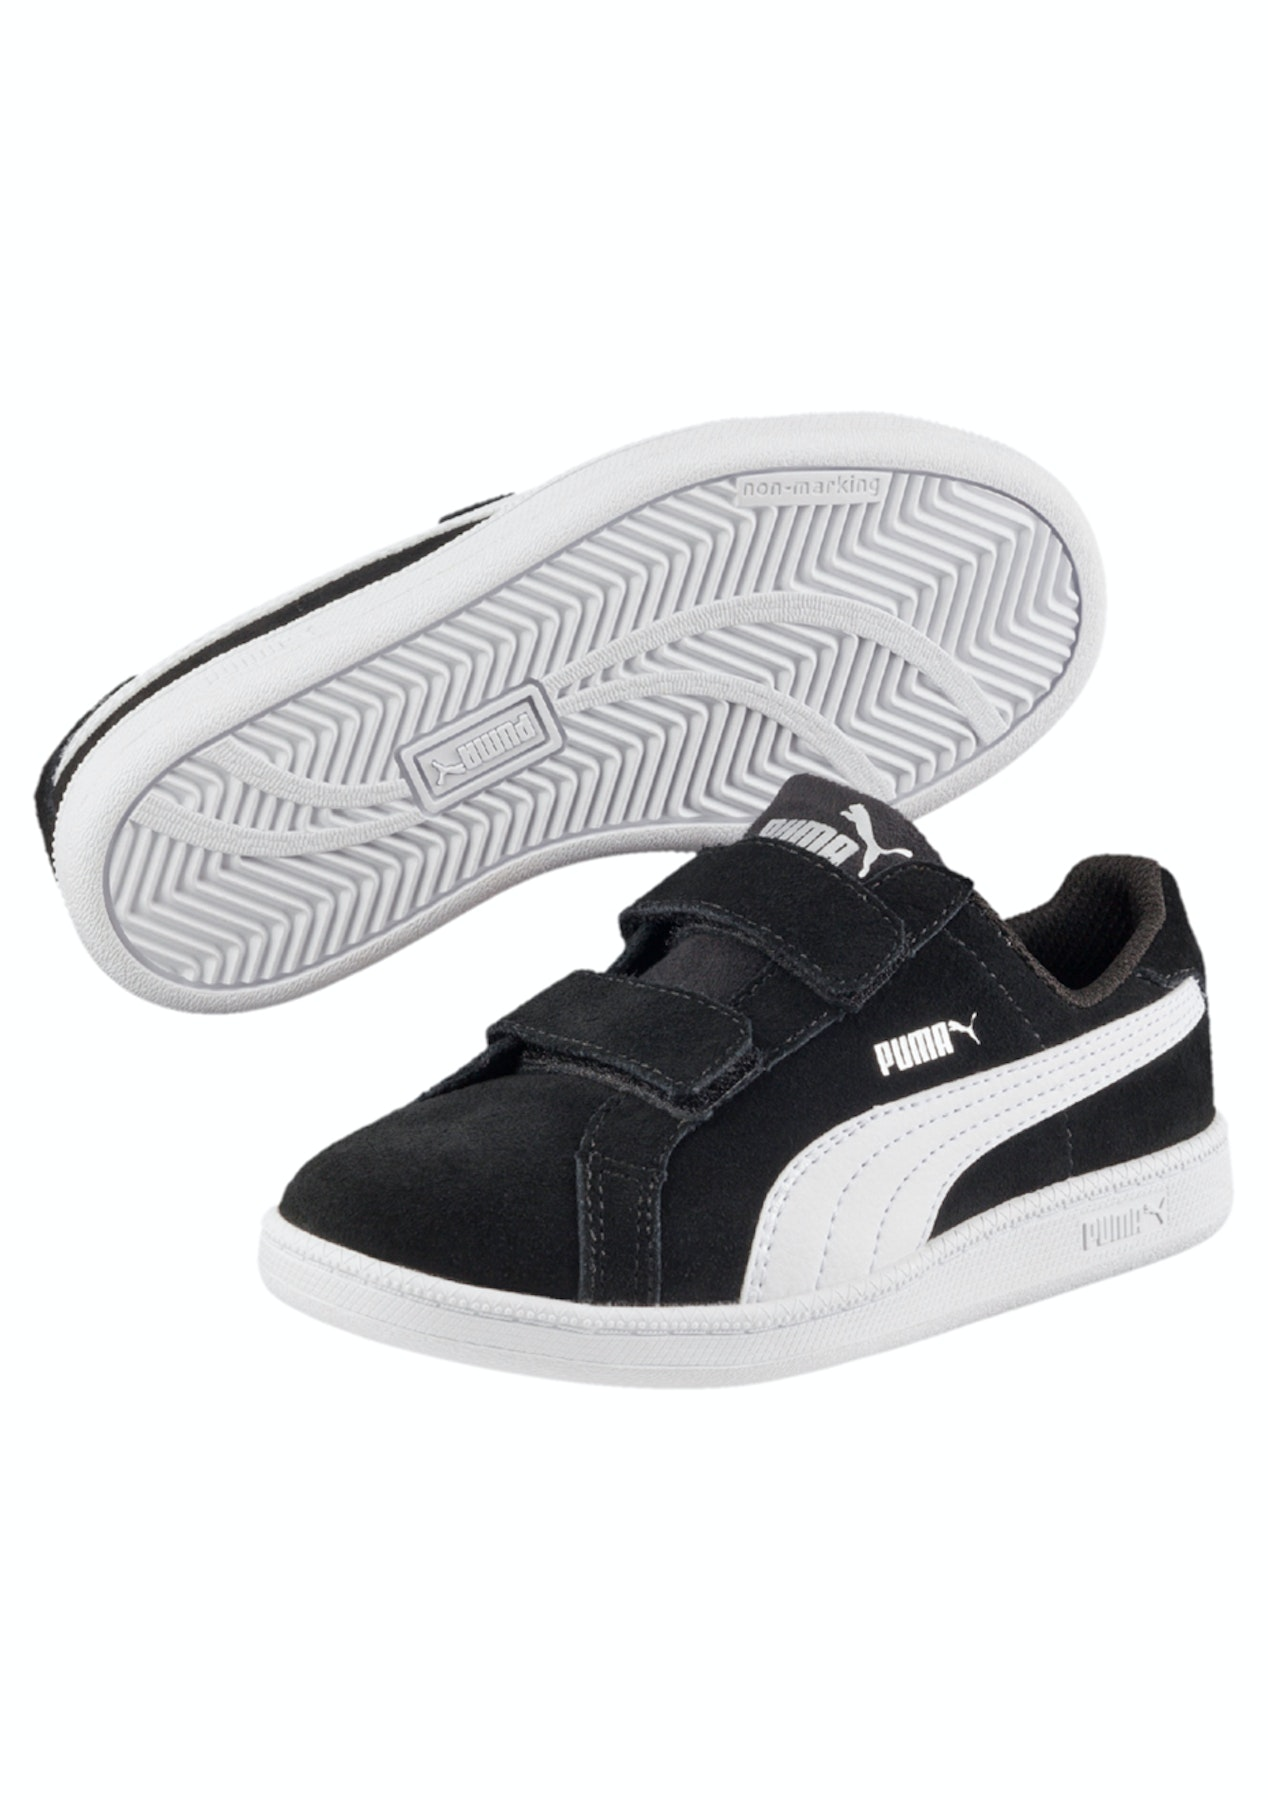 01312637a34 Puma Kids - Puma Smash Fun Sd V - Puma Encore - Onceit